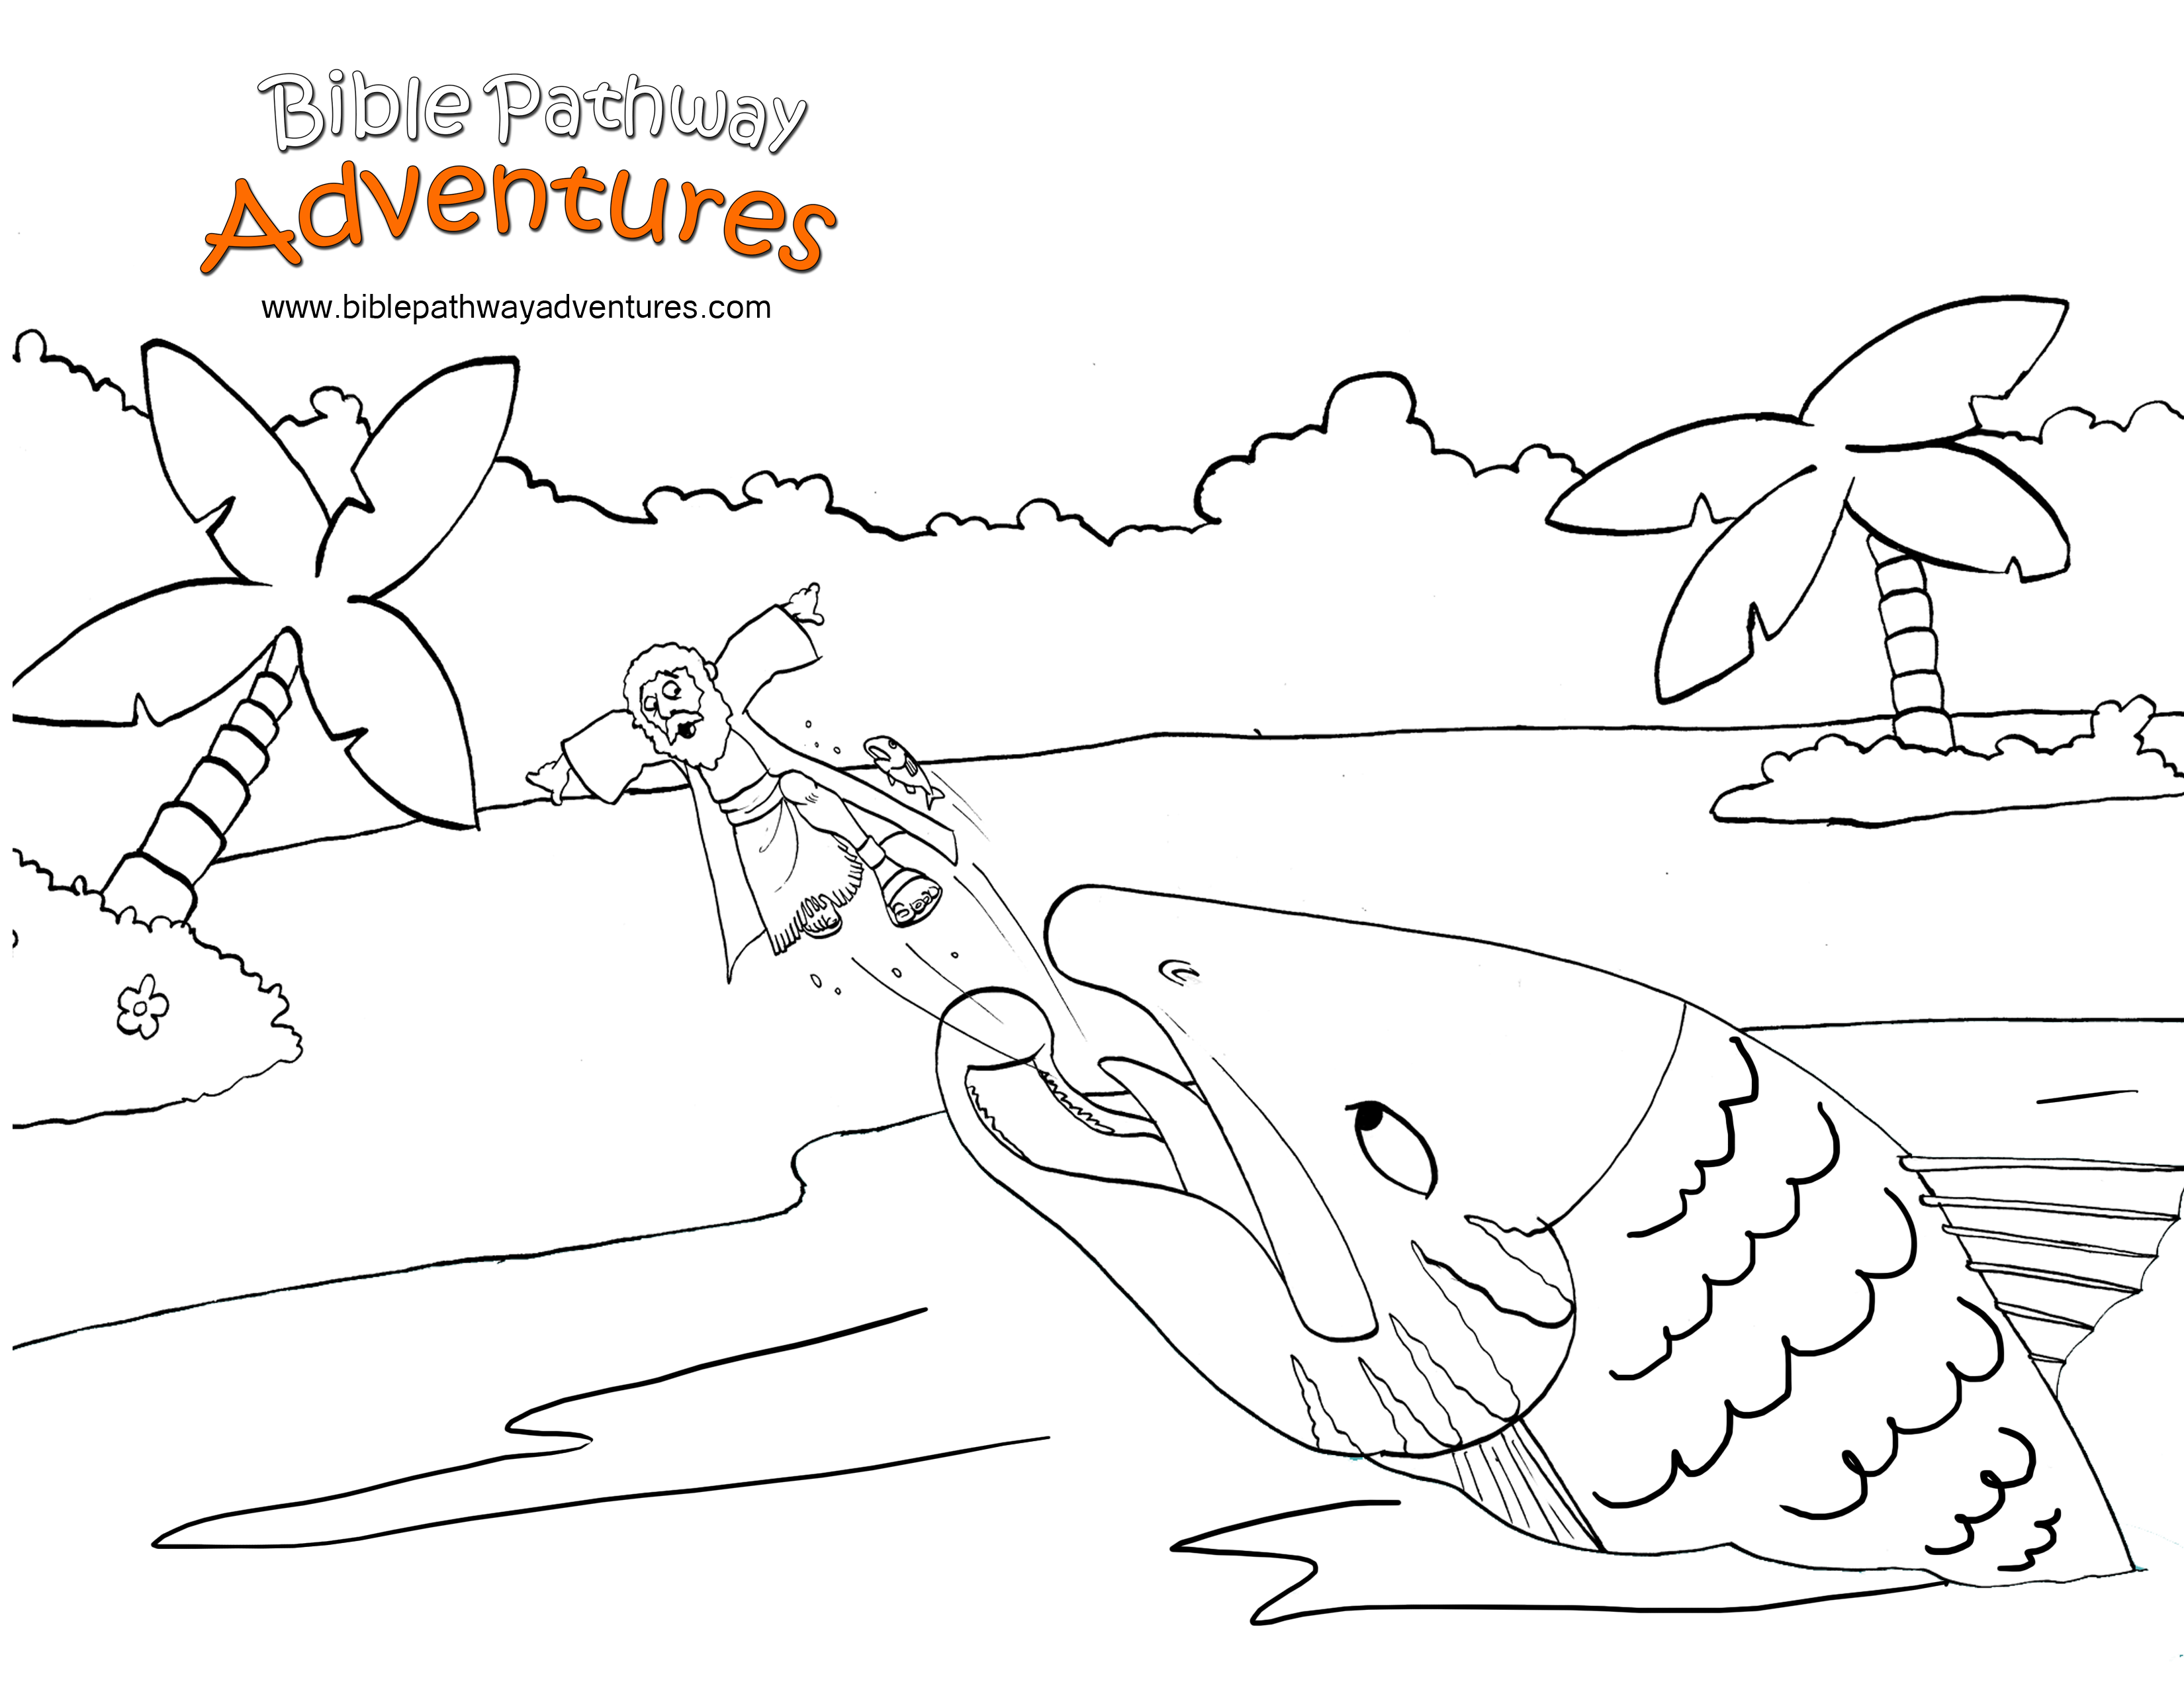 This Coloring Page Shows The Prophet Jonah Running Away From